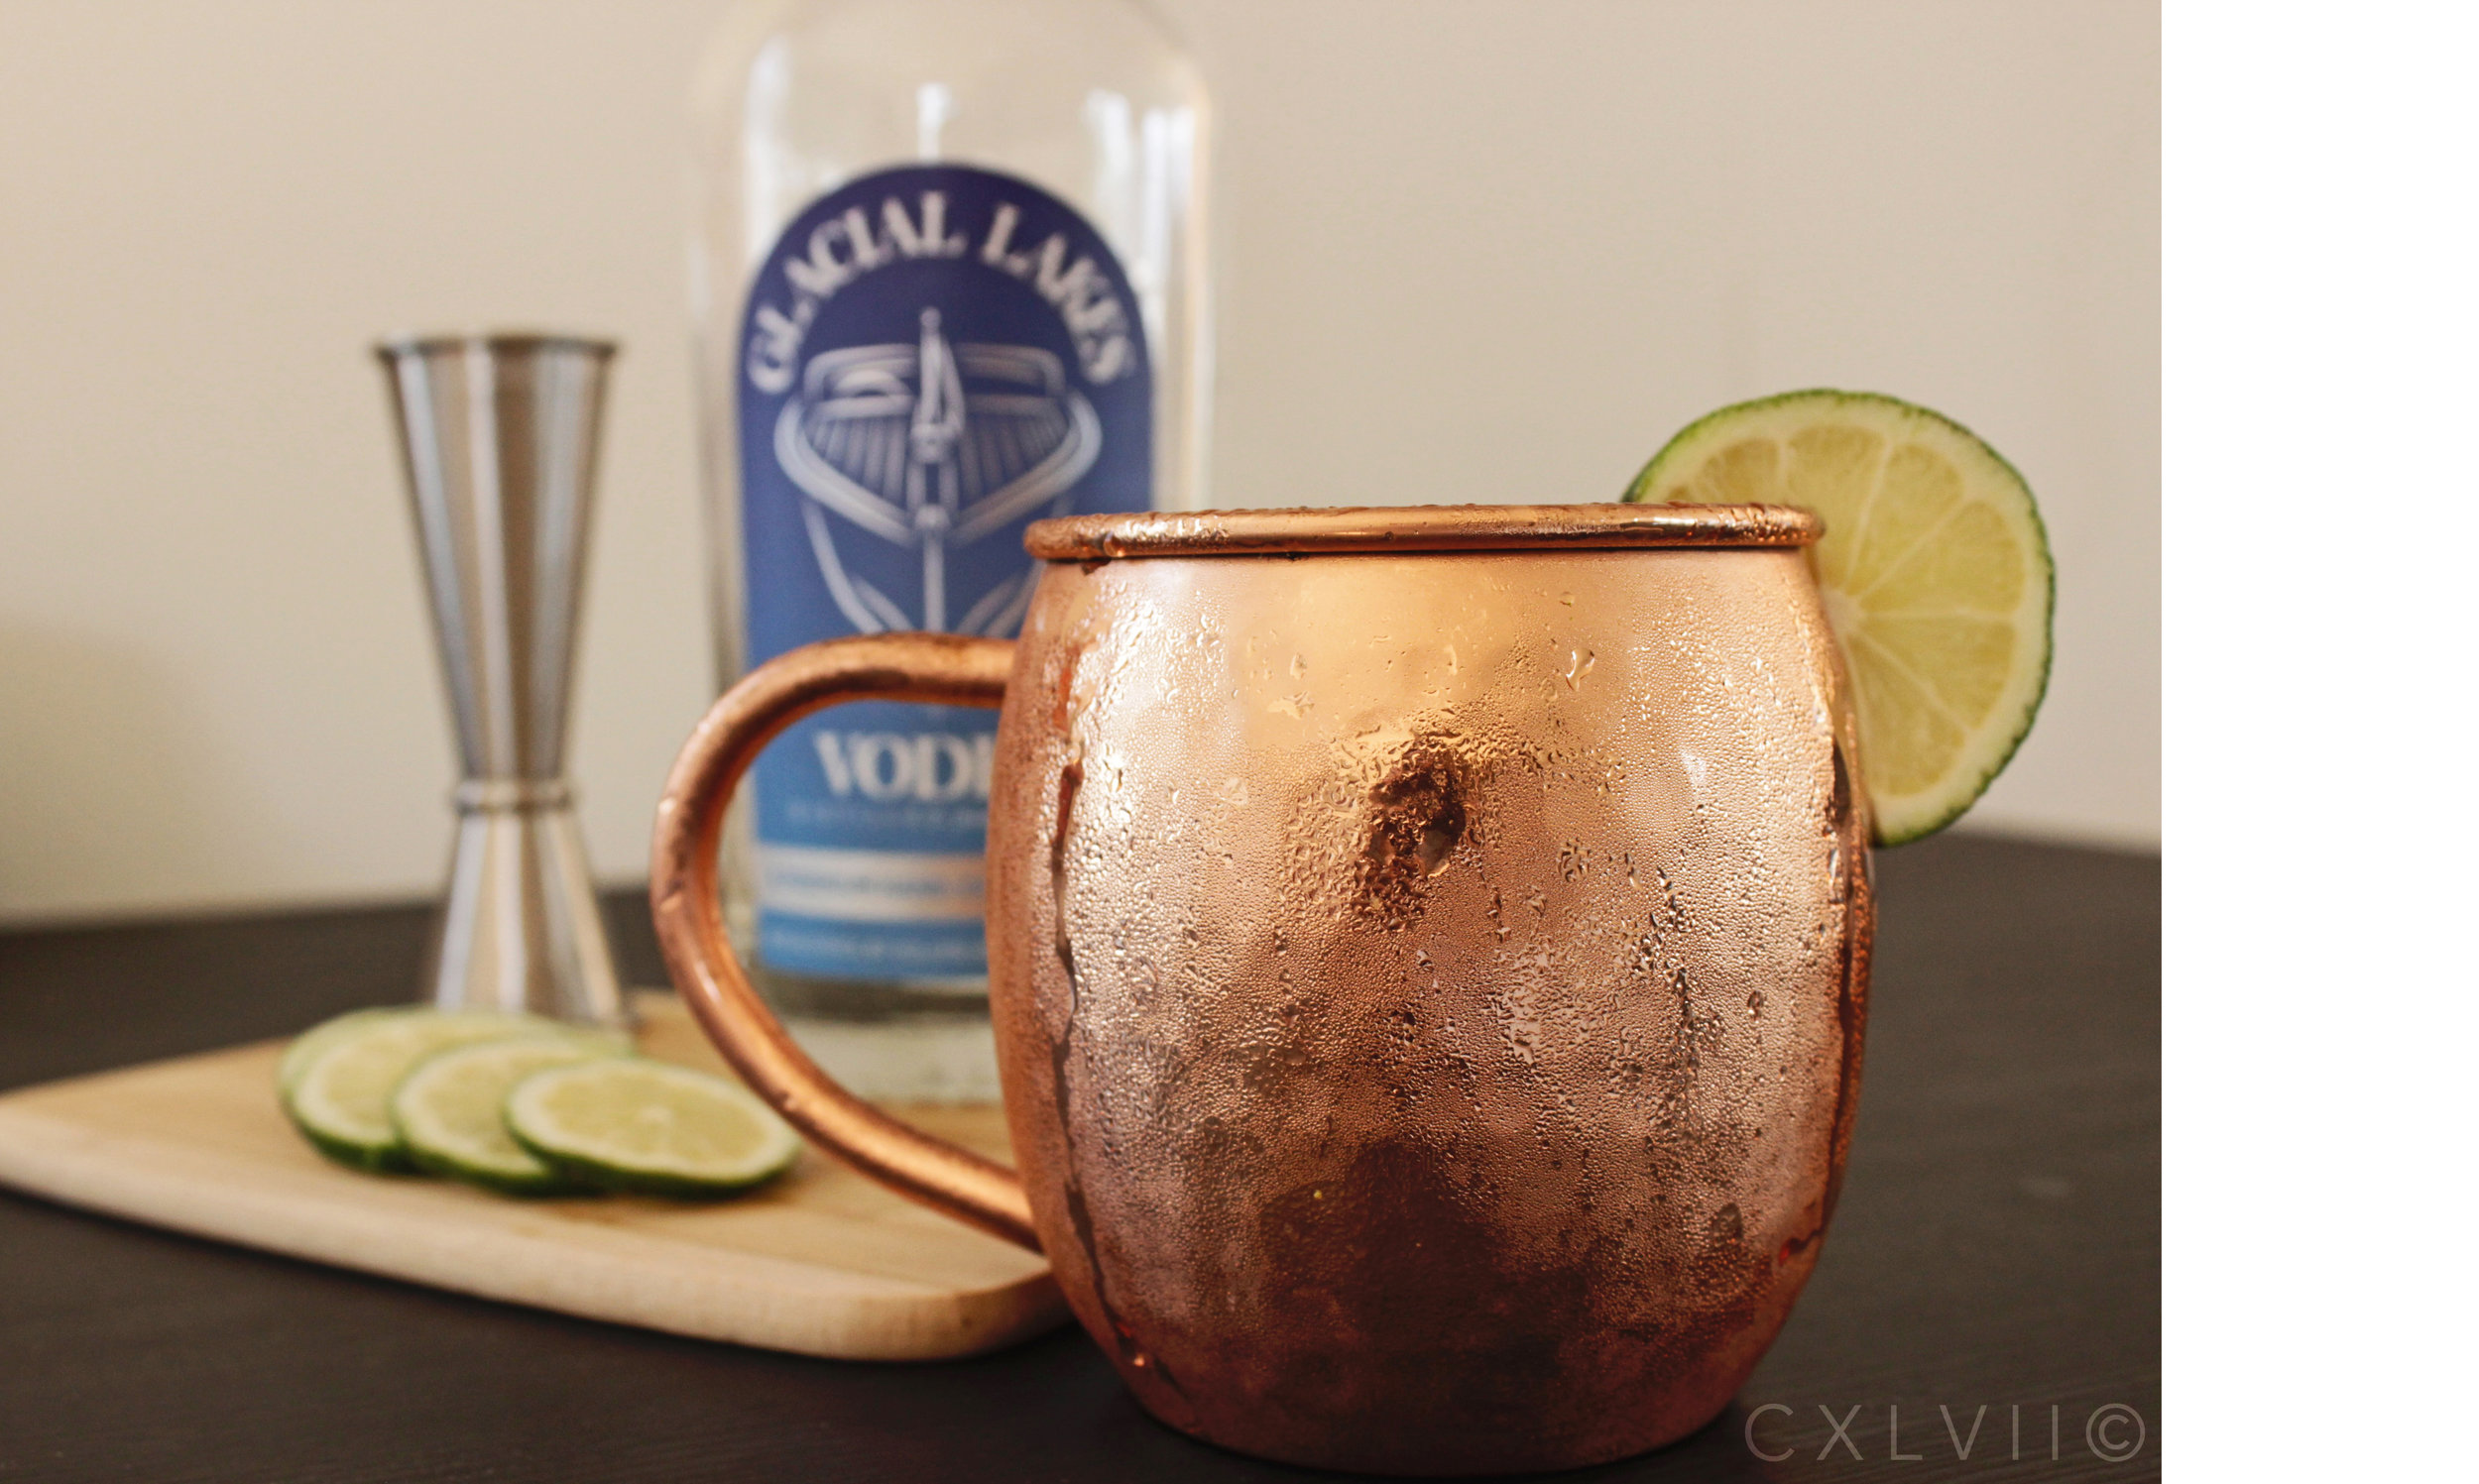 moscow mule - 2 oz Glacial Lakes Vodka1/2 oz of lime juiceServe in copper mug on iceTop with Ginger BeerGarnish with lime wedge